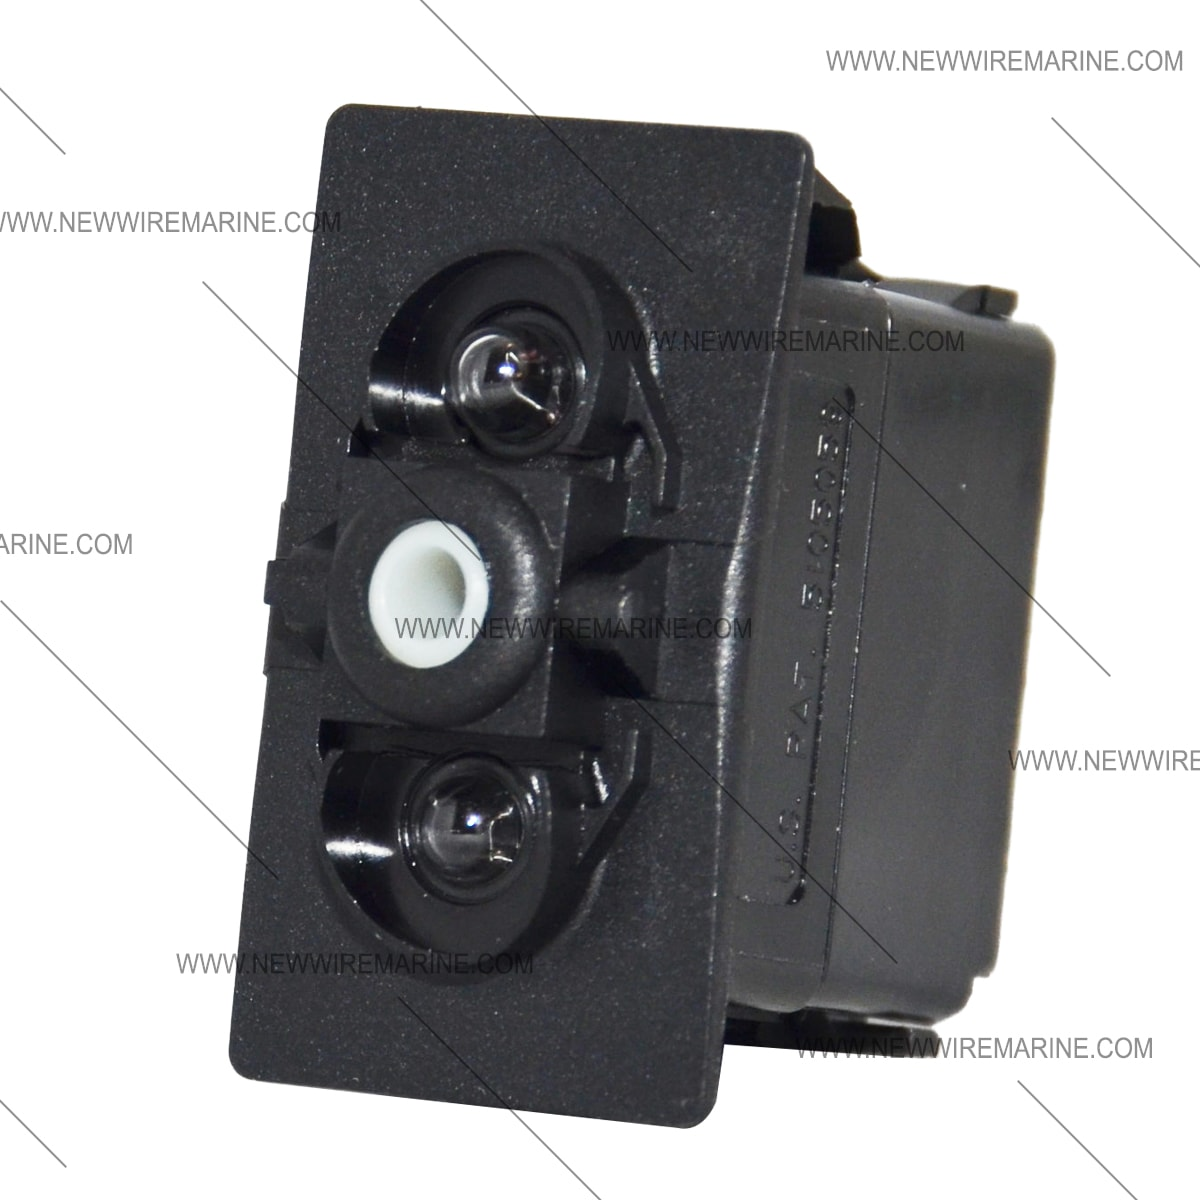 hight resolution of carling double light replacement rocker switch